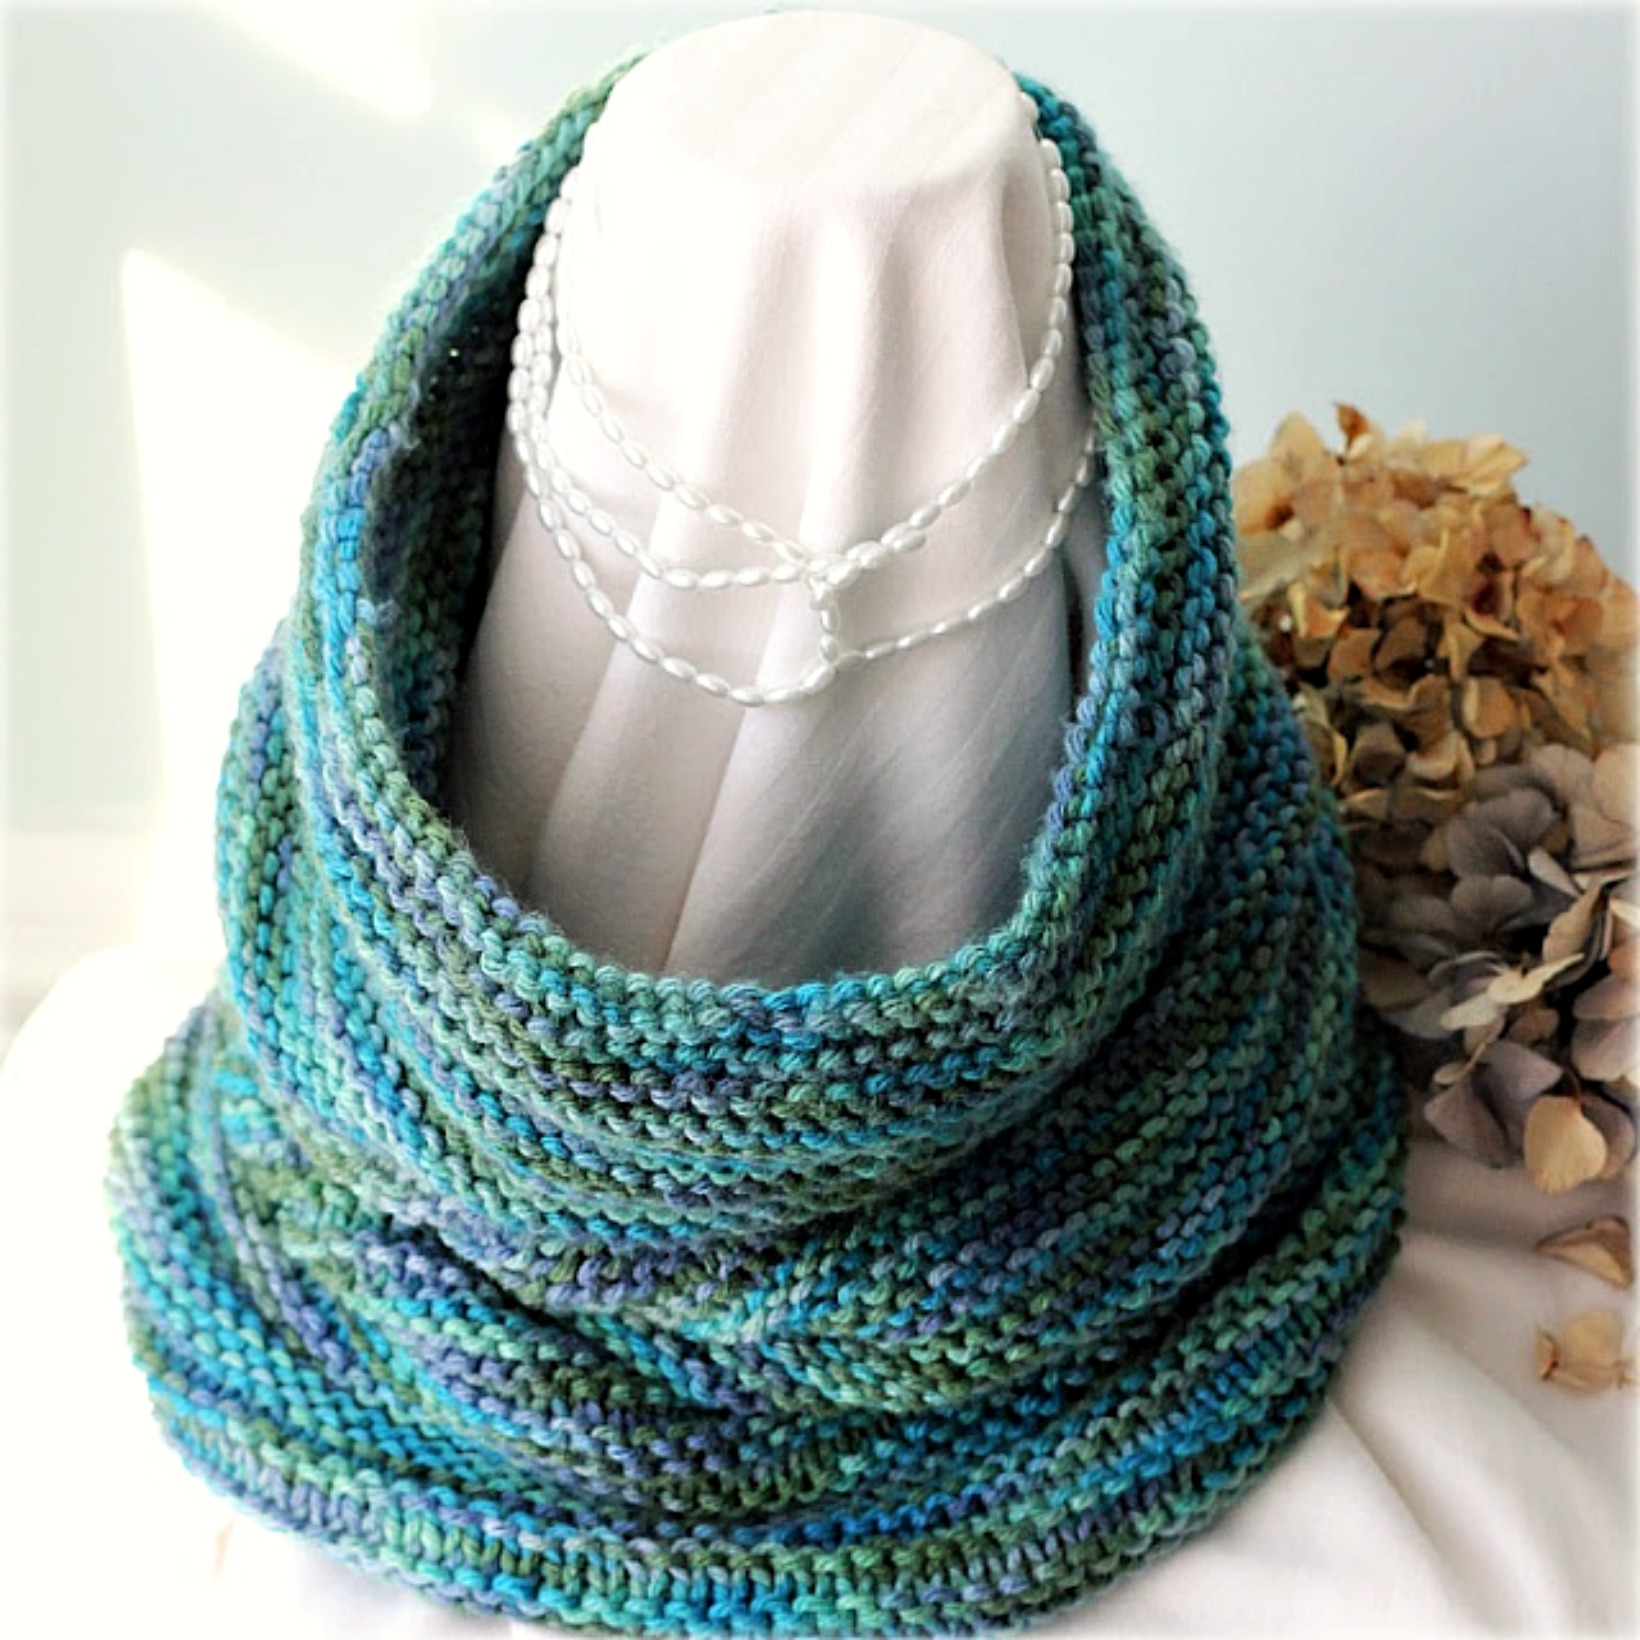 Cowl Neck Hoodie Knitting Pattern : Cute Knitted Cowl Pattern Grateful Prayer Thankful Heart